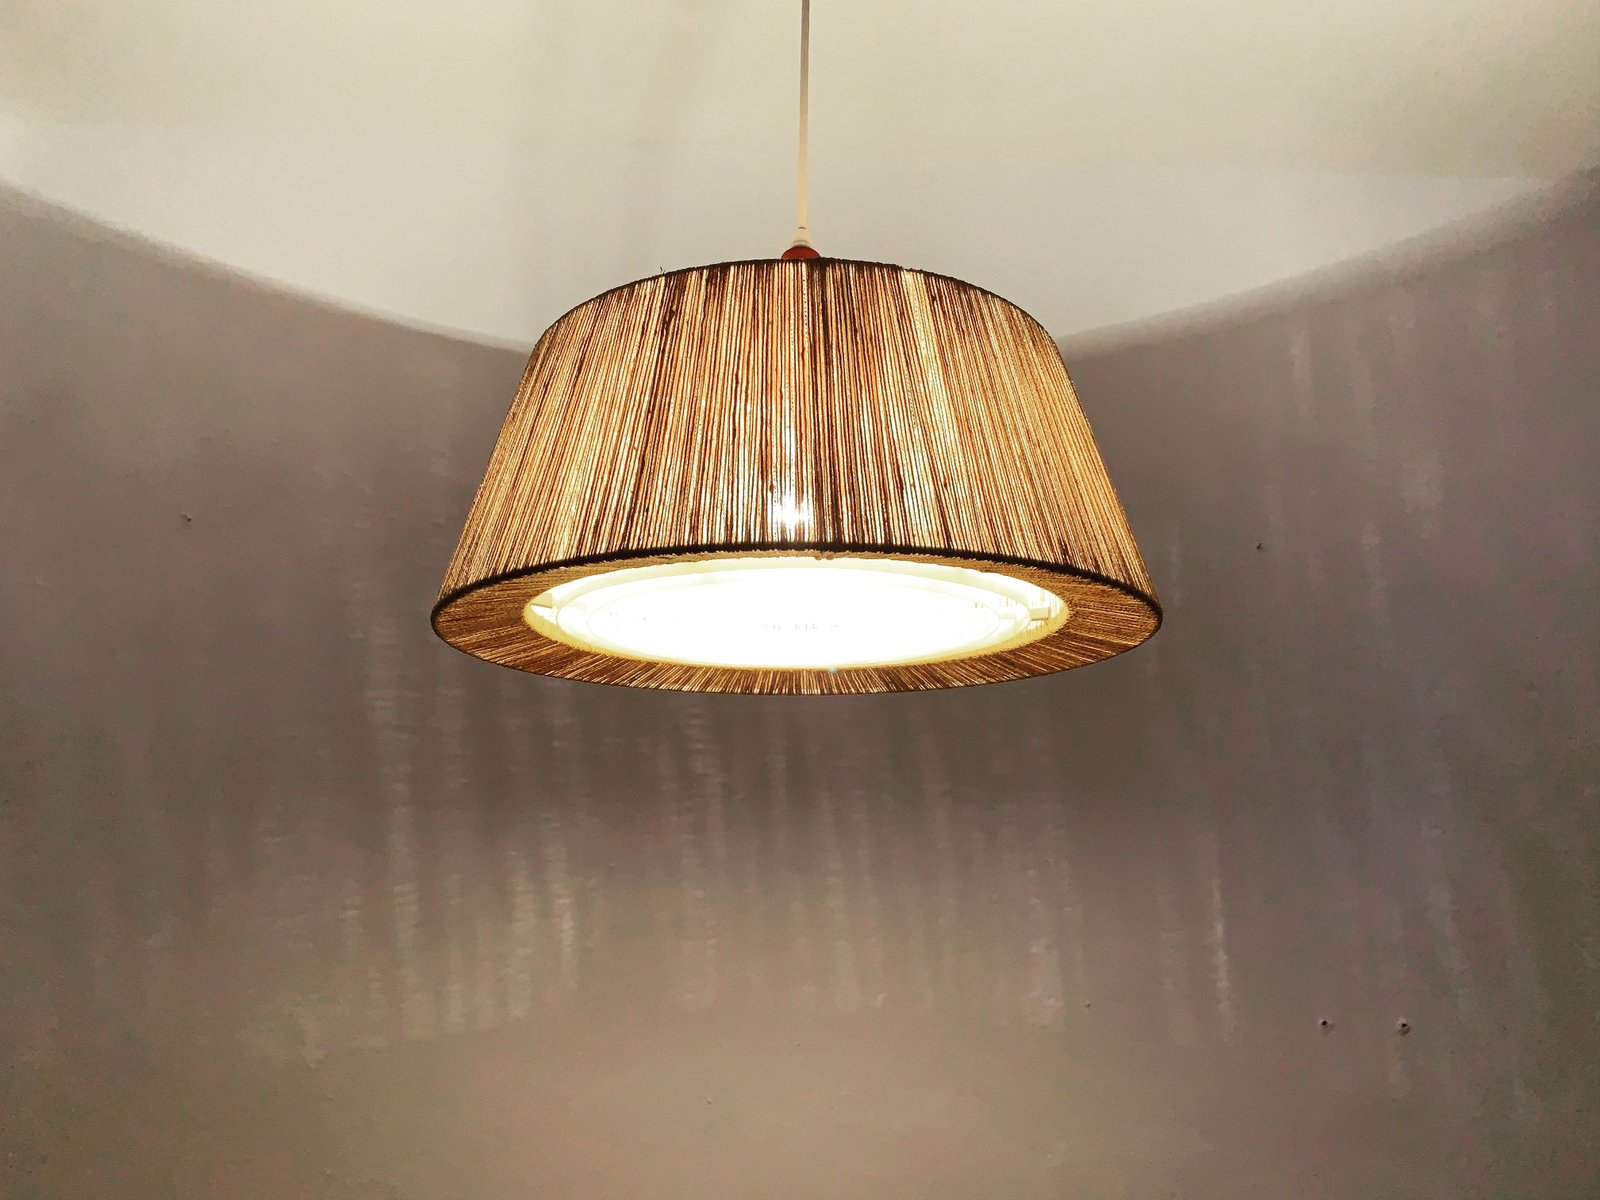 Raffia Pendant Lamp from Temde, 1960s for sale at Pamono